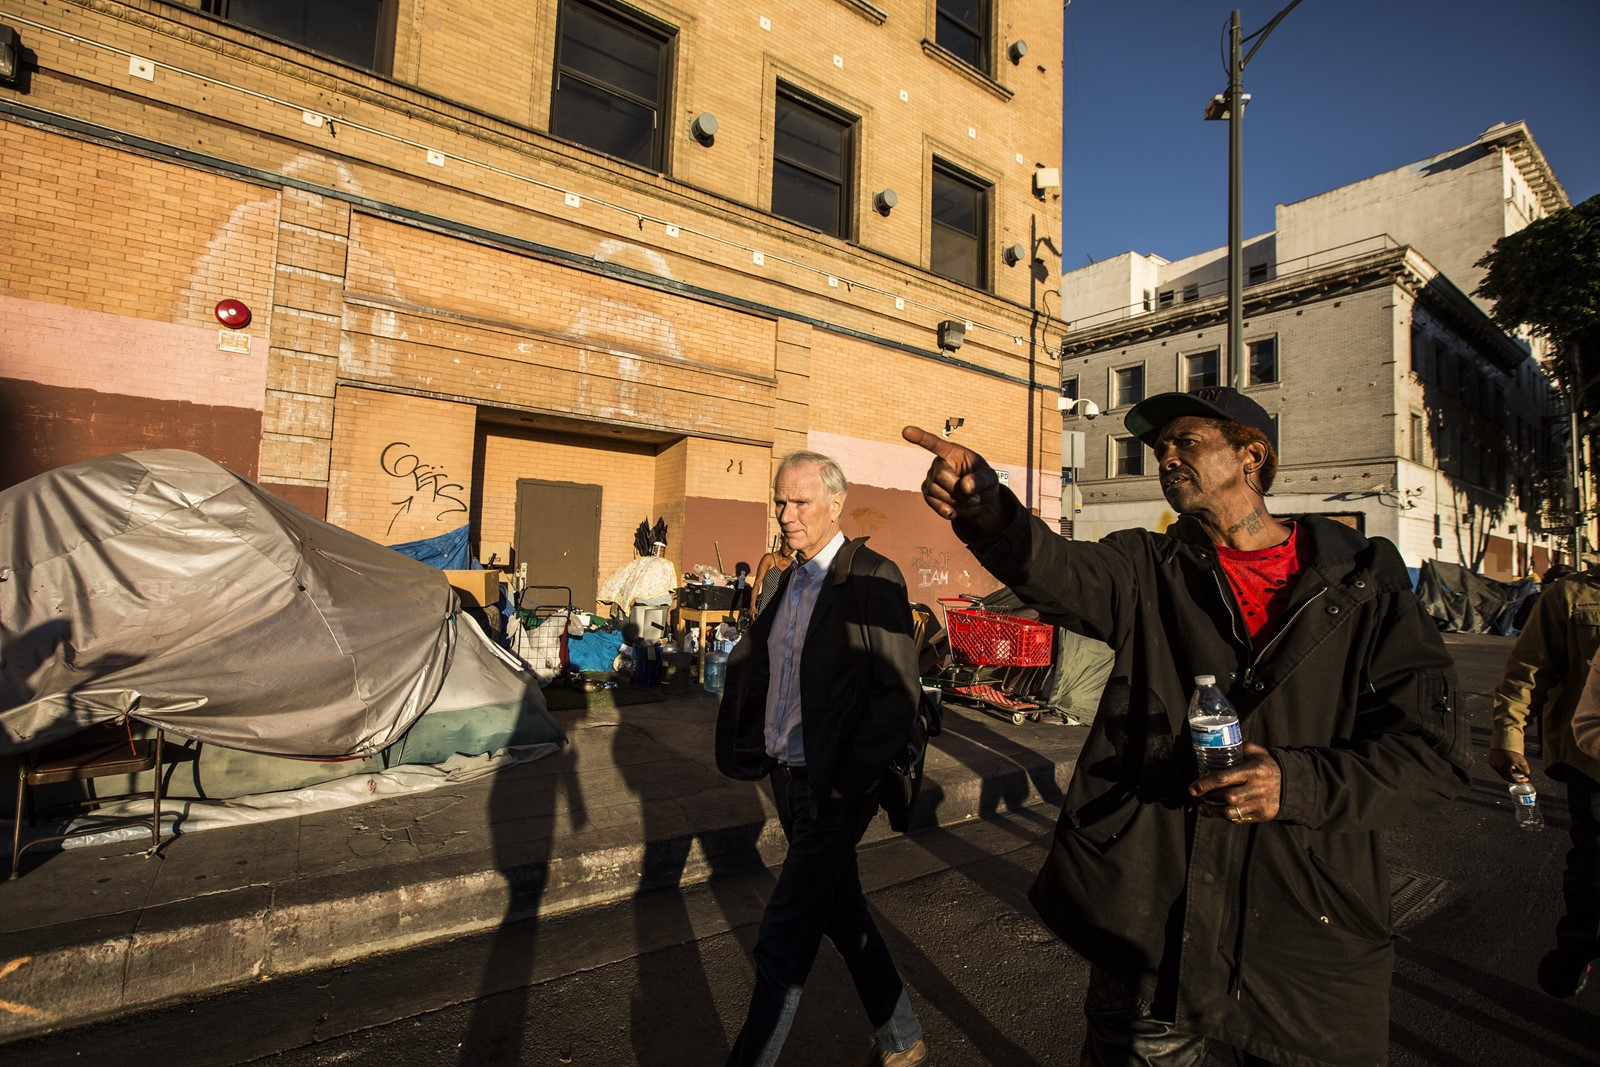 U.N. Rapporteur Philip Alston, left, visits L.A.'s skid row in December. He compared homeless conditions unfavorably with standards for Syria refugee camps. — Photograph: Maria Alejandra Cardona/Los Angeles Times.